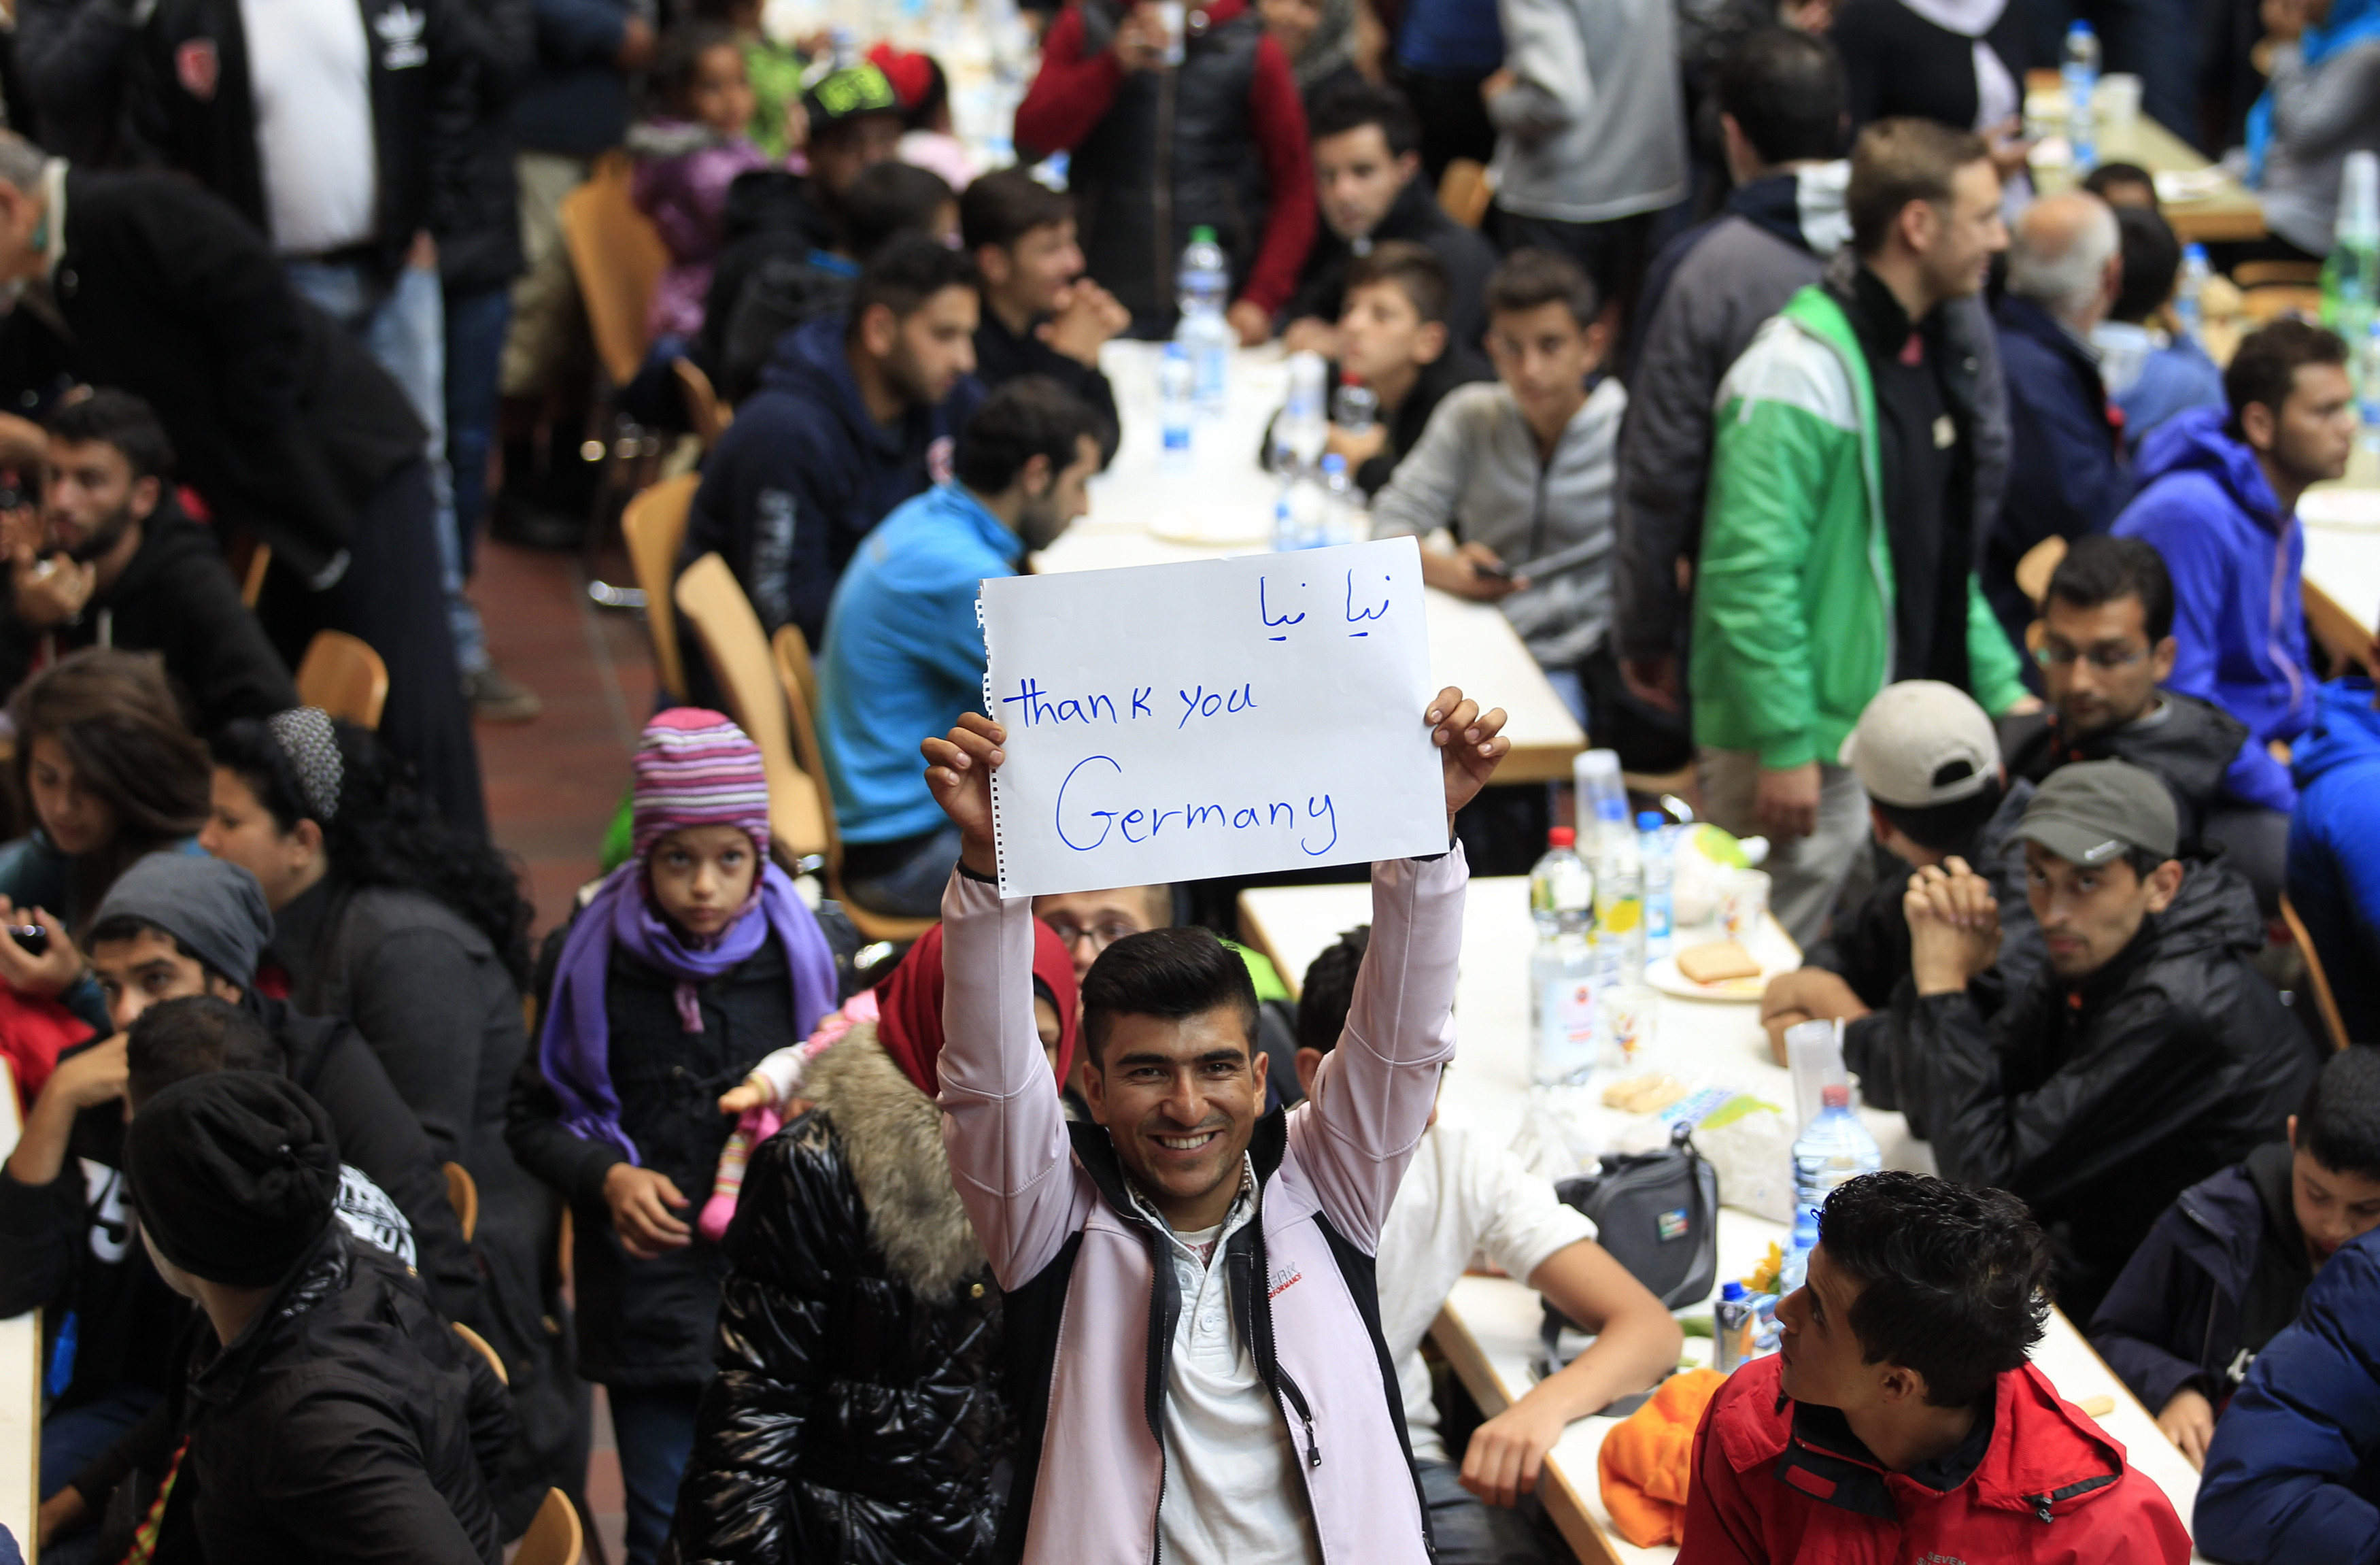 A migrant holds up a placard at a registration centre after arriving at the main railway station in Dortmund, Germany September 6, 2015. Austria and Germany threw open their borders to thousands of exhausted migrants on Saturday, bussed to the Hungarian border by a right-wing government that had tried to stop them but was overwhelmed by the sheer numbers reaching Europe's frontiers.  REUTERS/Ina Fassbender - RTX1RB6Z